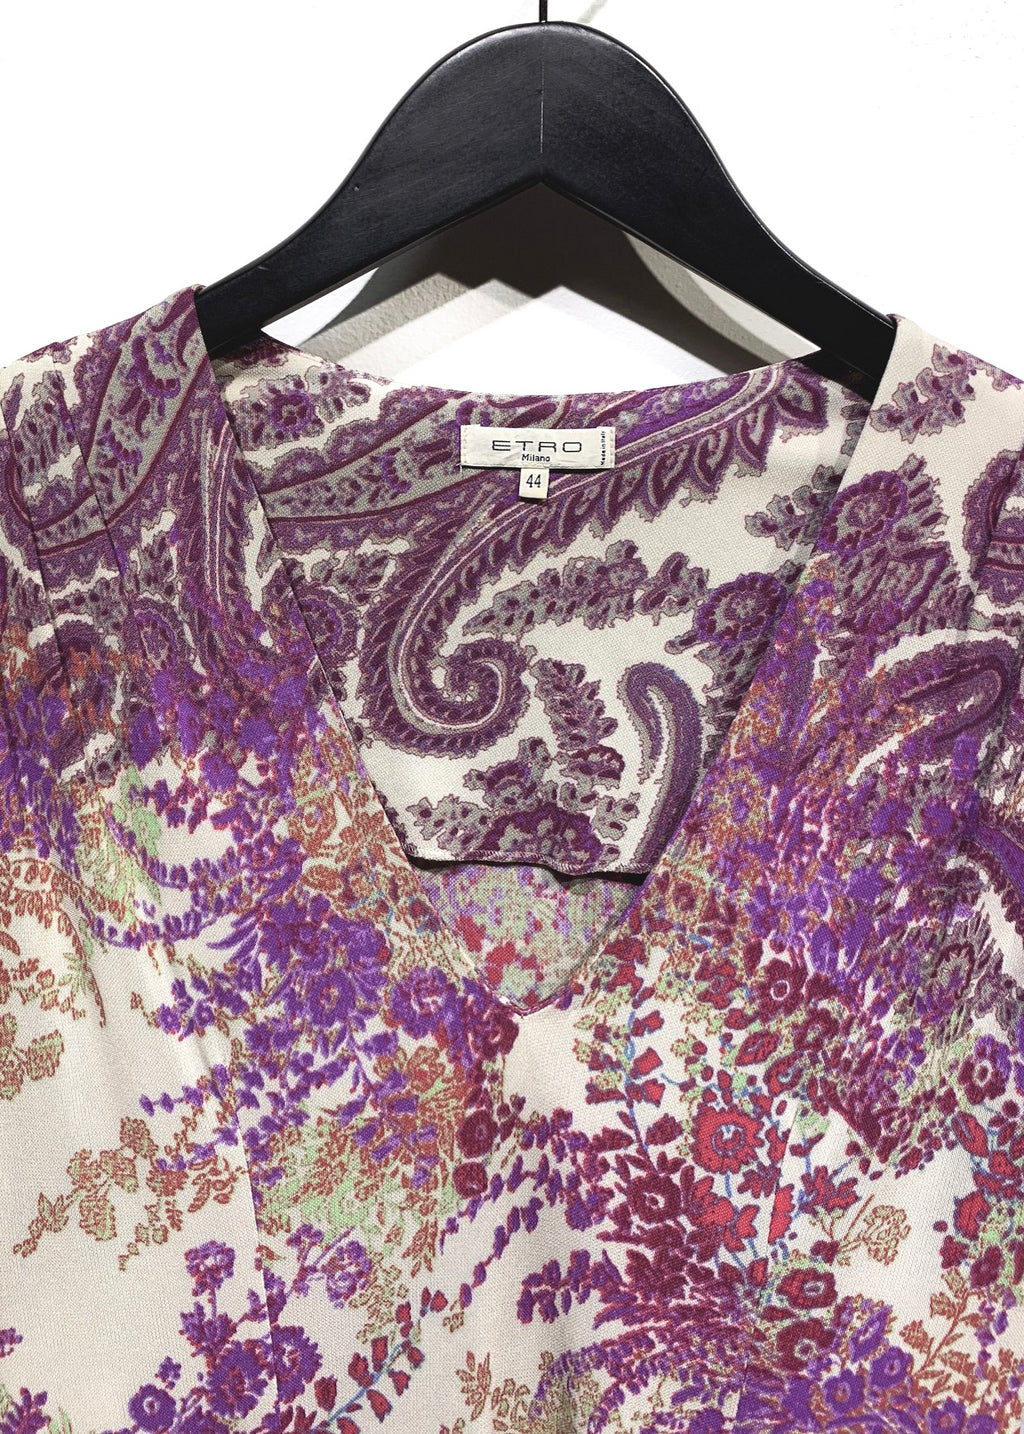 Etro Purple Paisley Flower Printed Stretch 3/4 Sleeves Dress